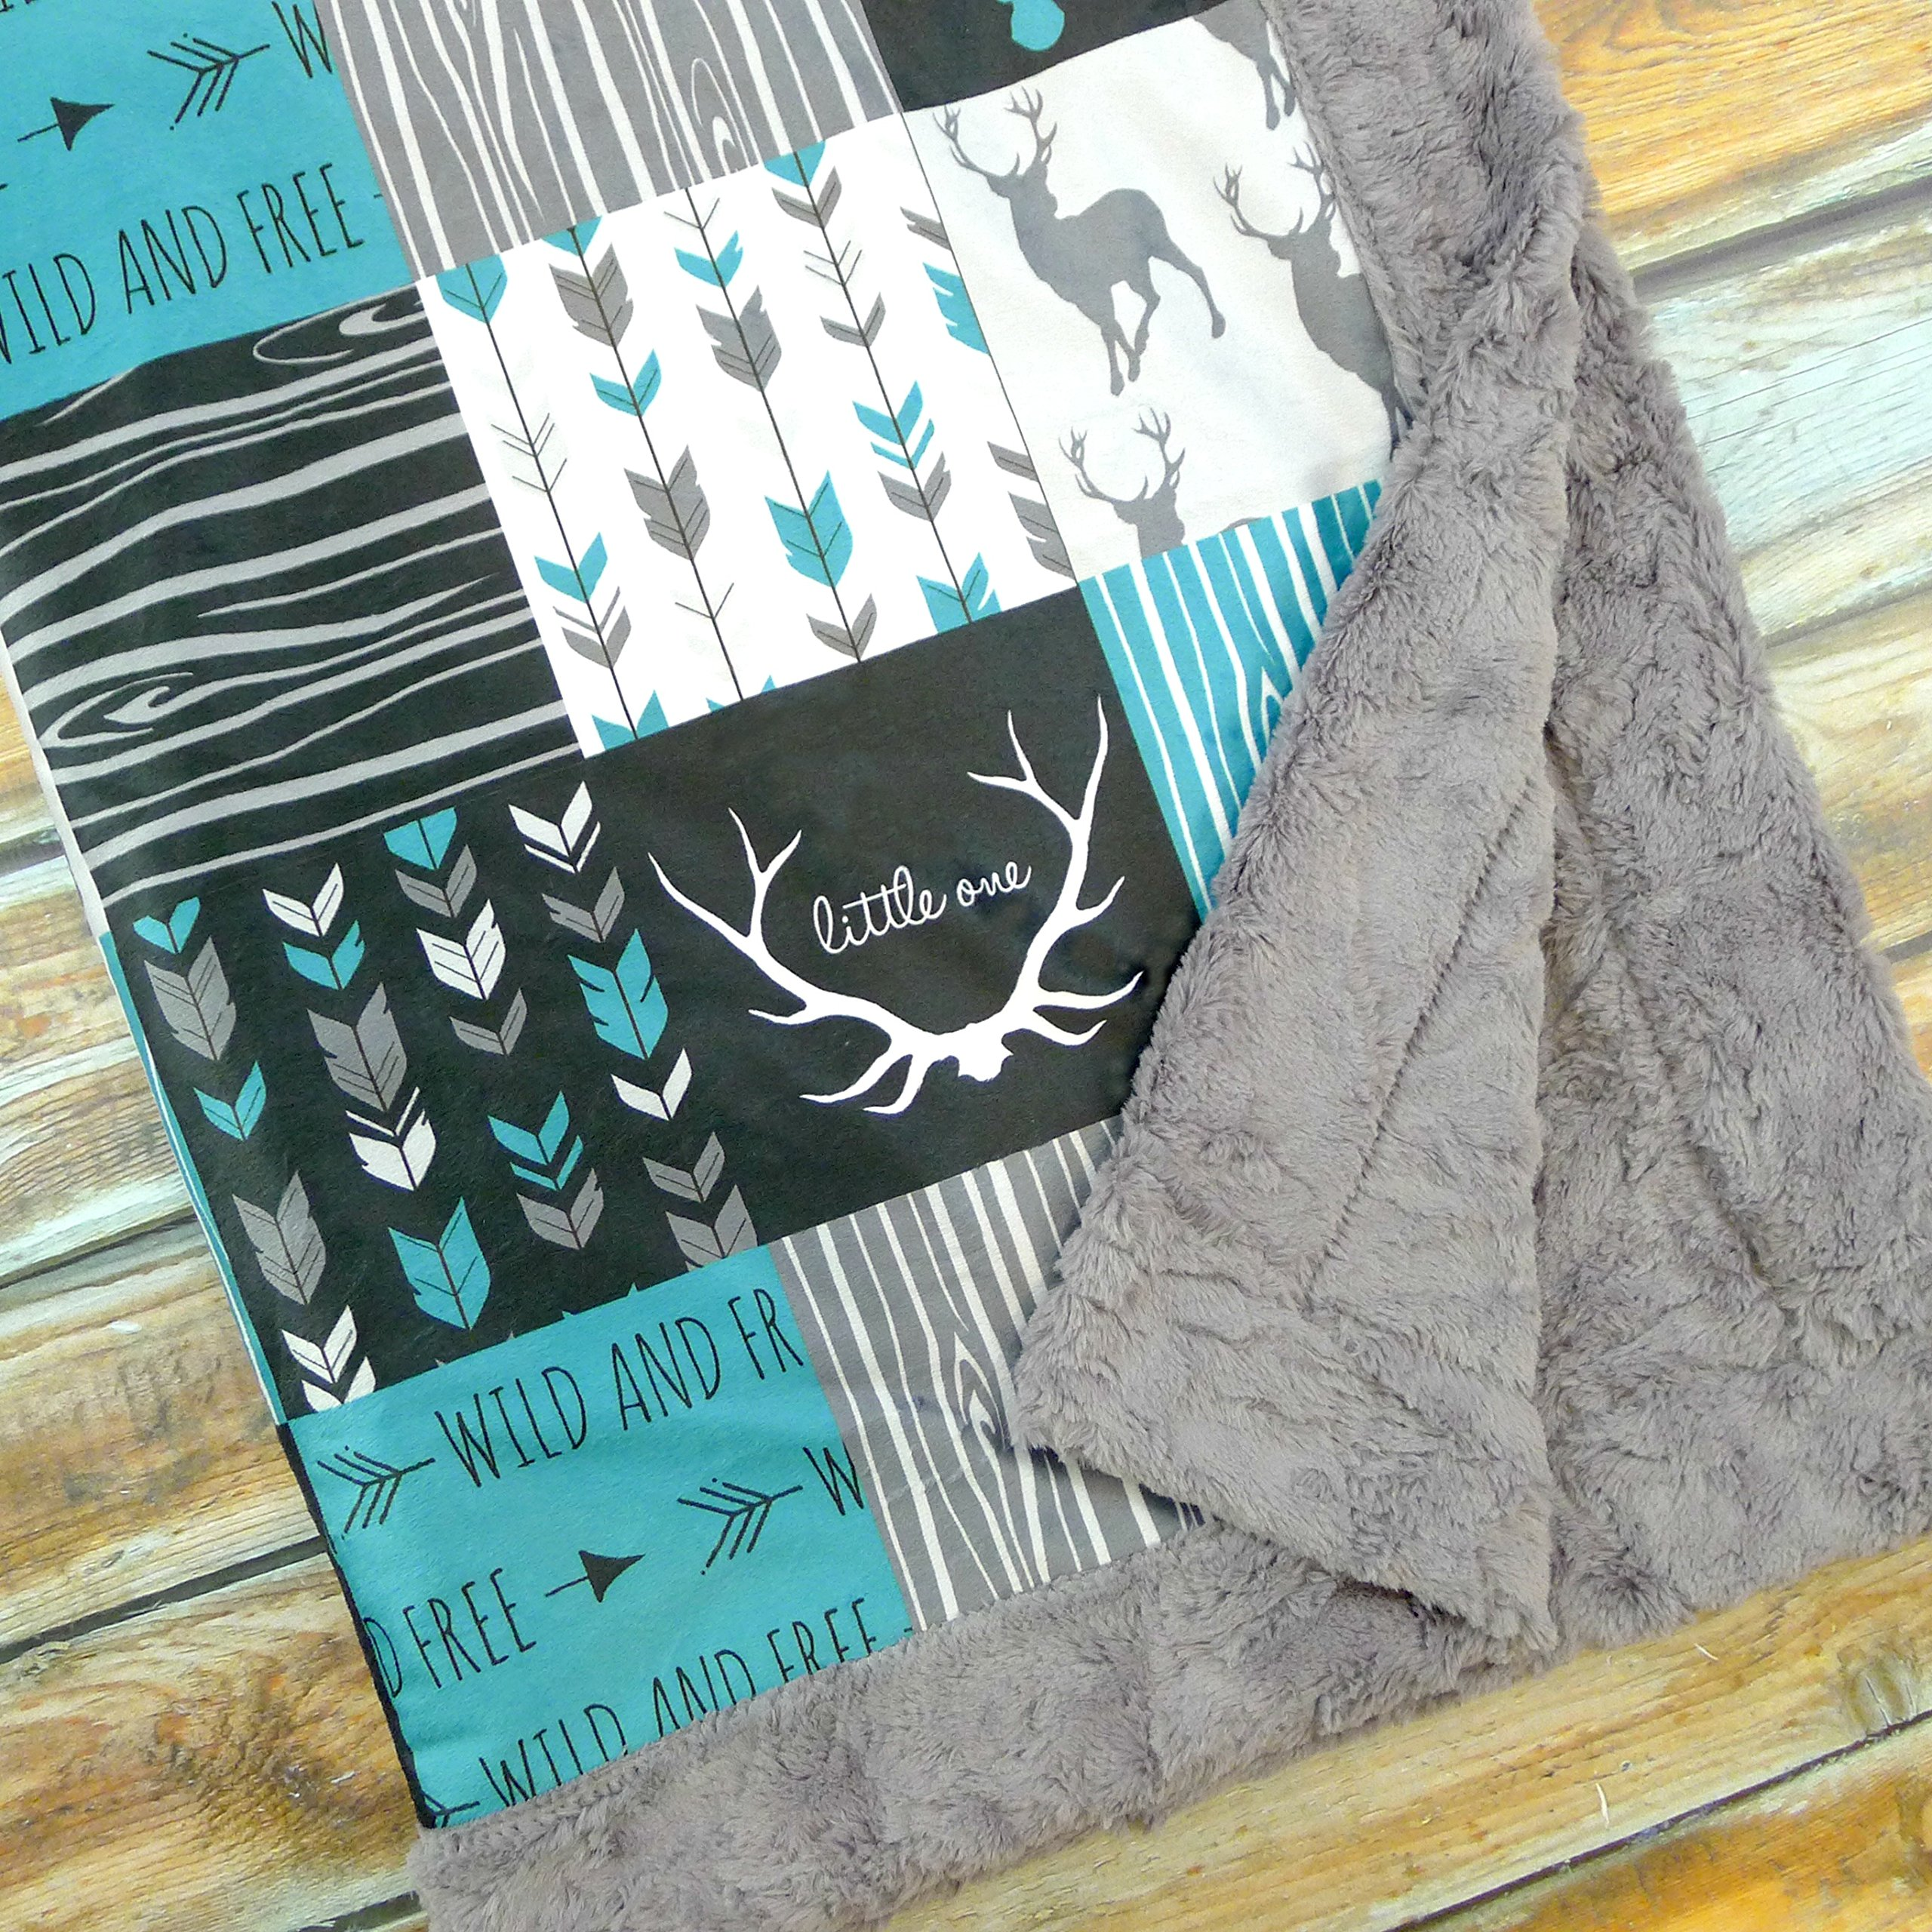 Gender Neutral Baby Blanket with Deer Antlers and Little One Wild and Free Print